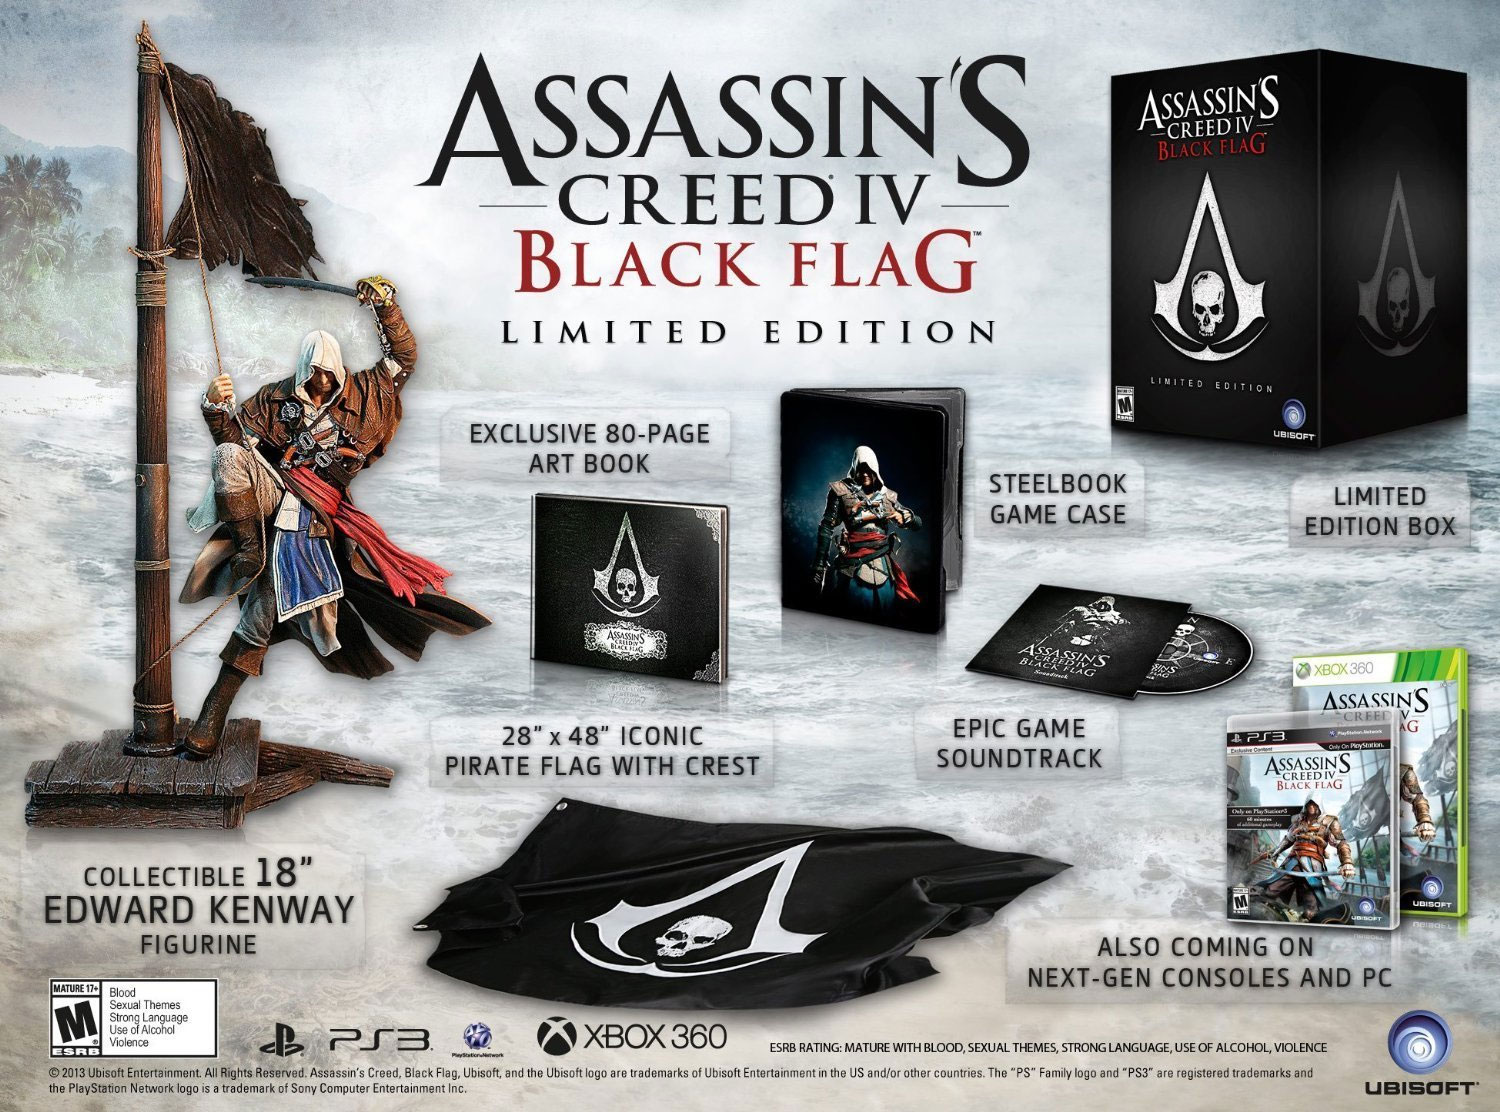 Assassin's Creed IV: Black Flag Limited Edition for Xbox One